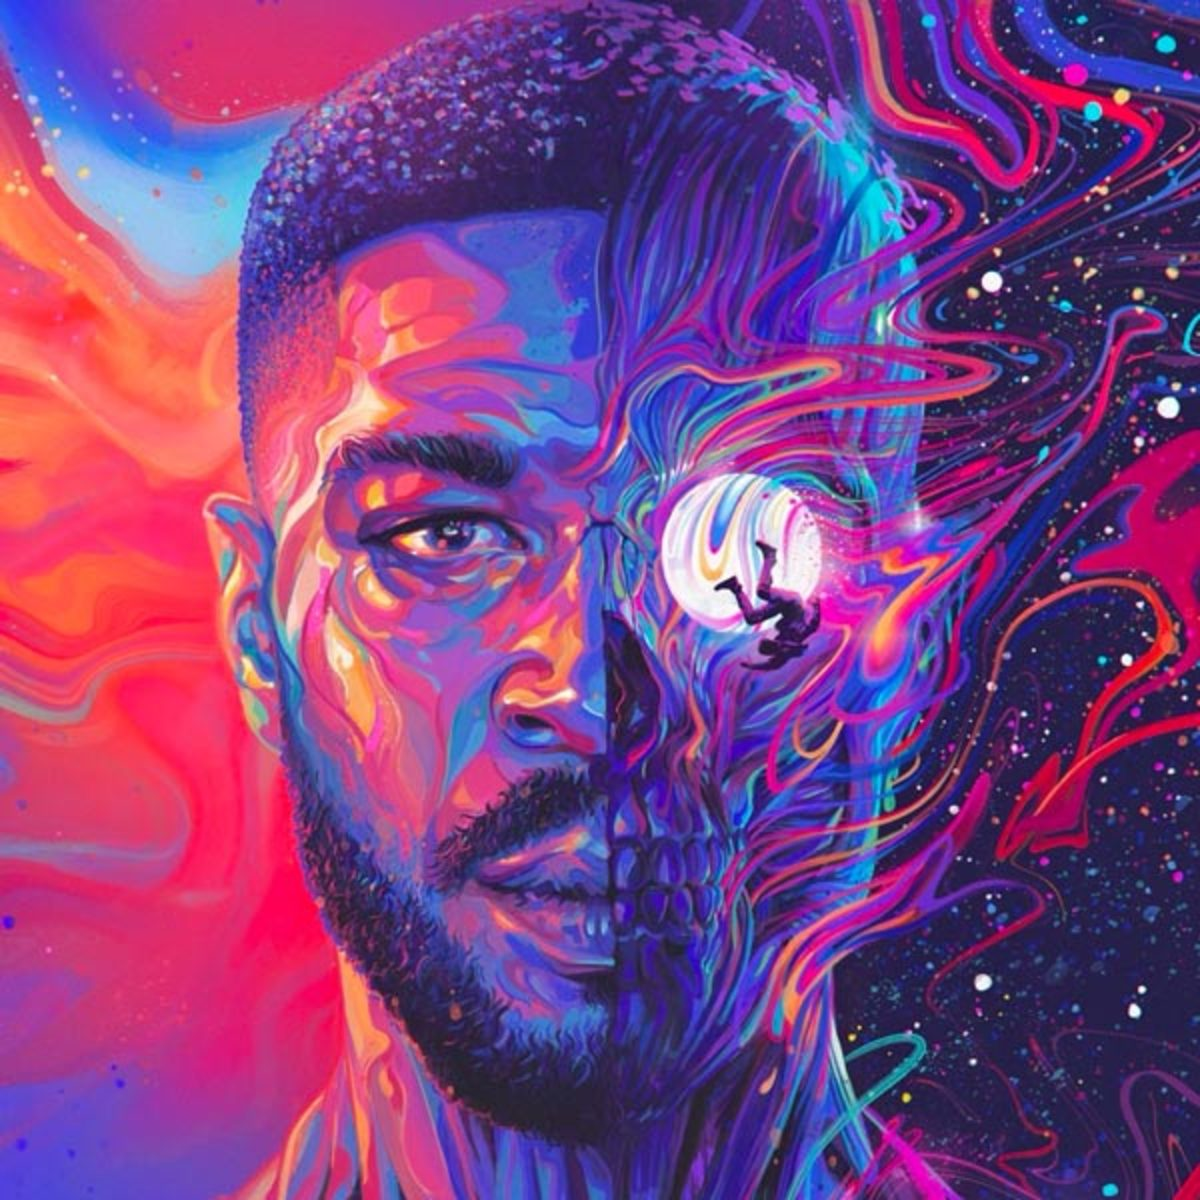 Kid Cudi Returns as Mr. Rager on 'Man on the Moon III: The Chosen' - cover